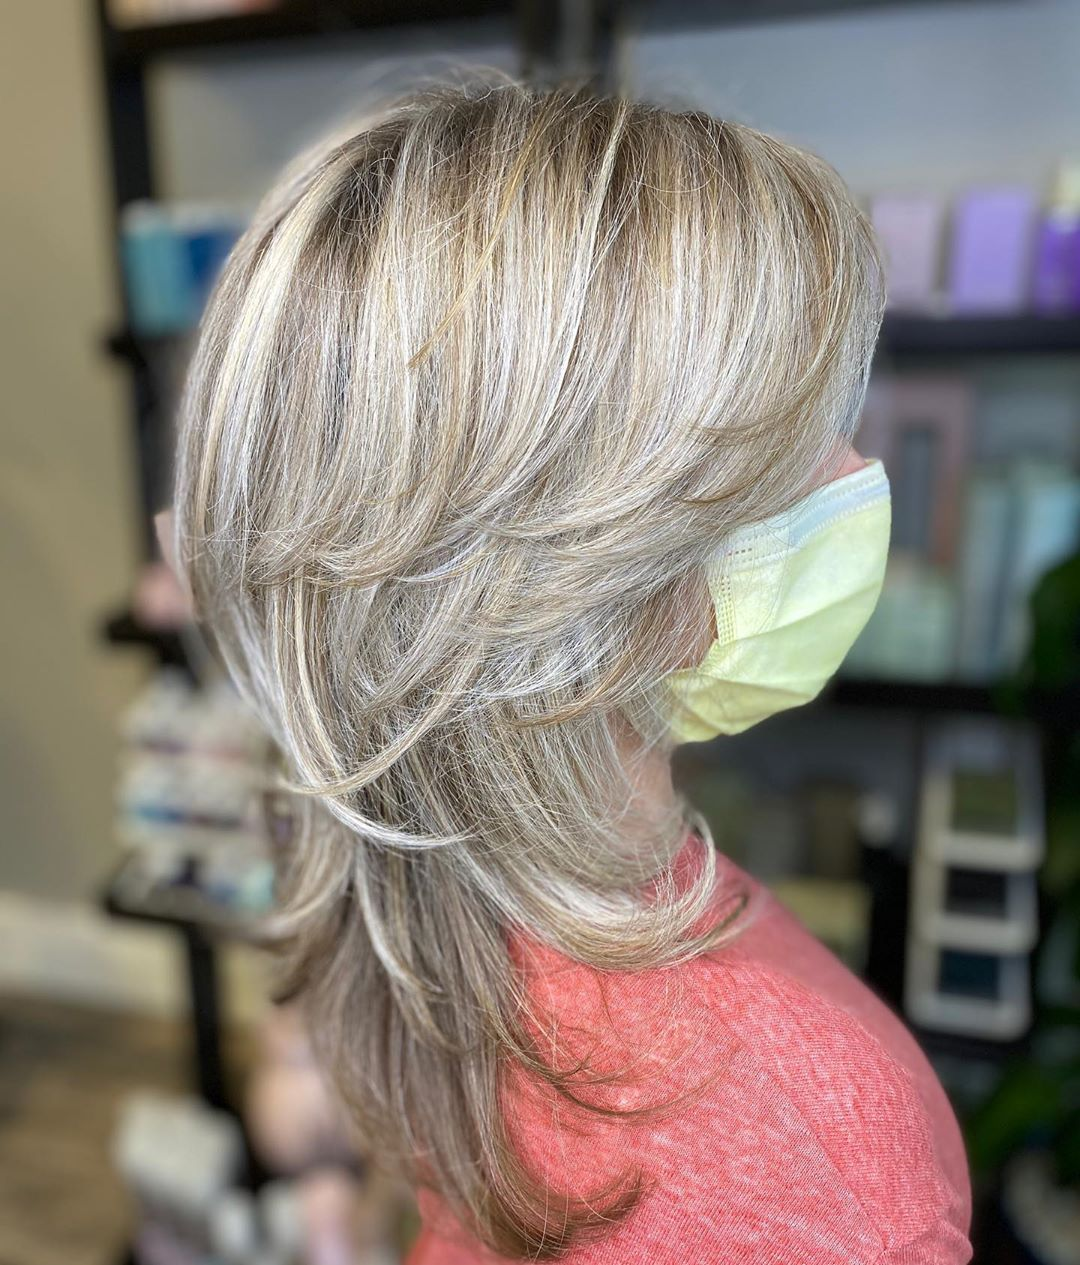 15 Modern Shaggy Hairstyles for Women Over 50 with Fine Hair